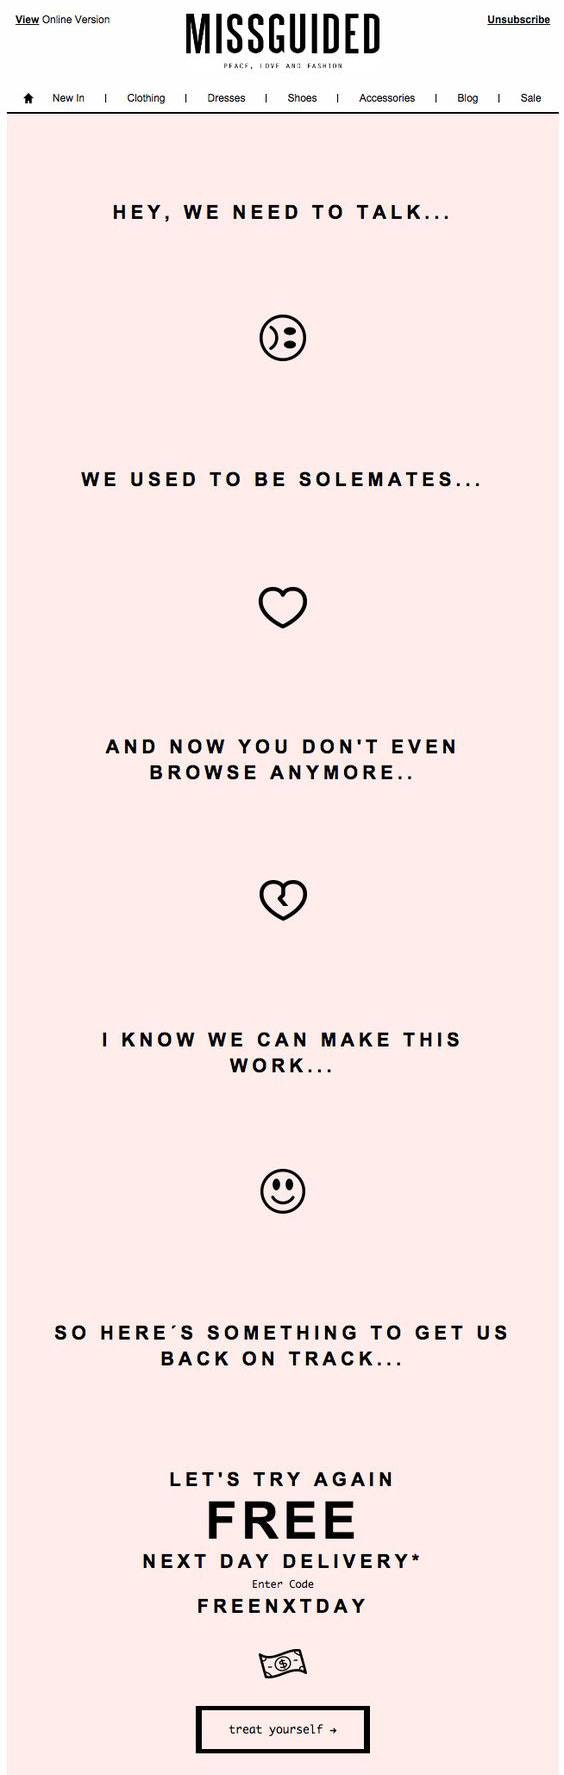 Missguided Email Template